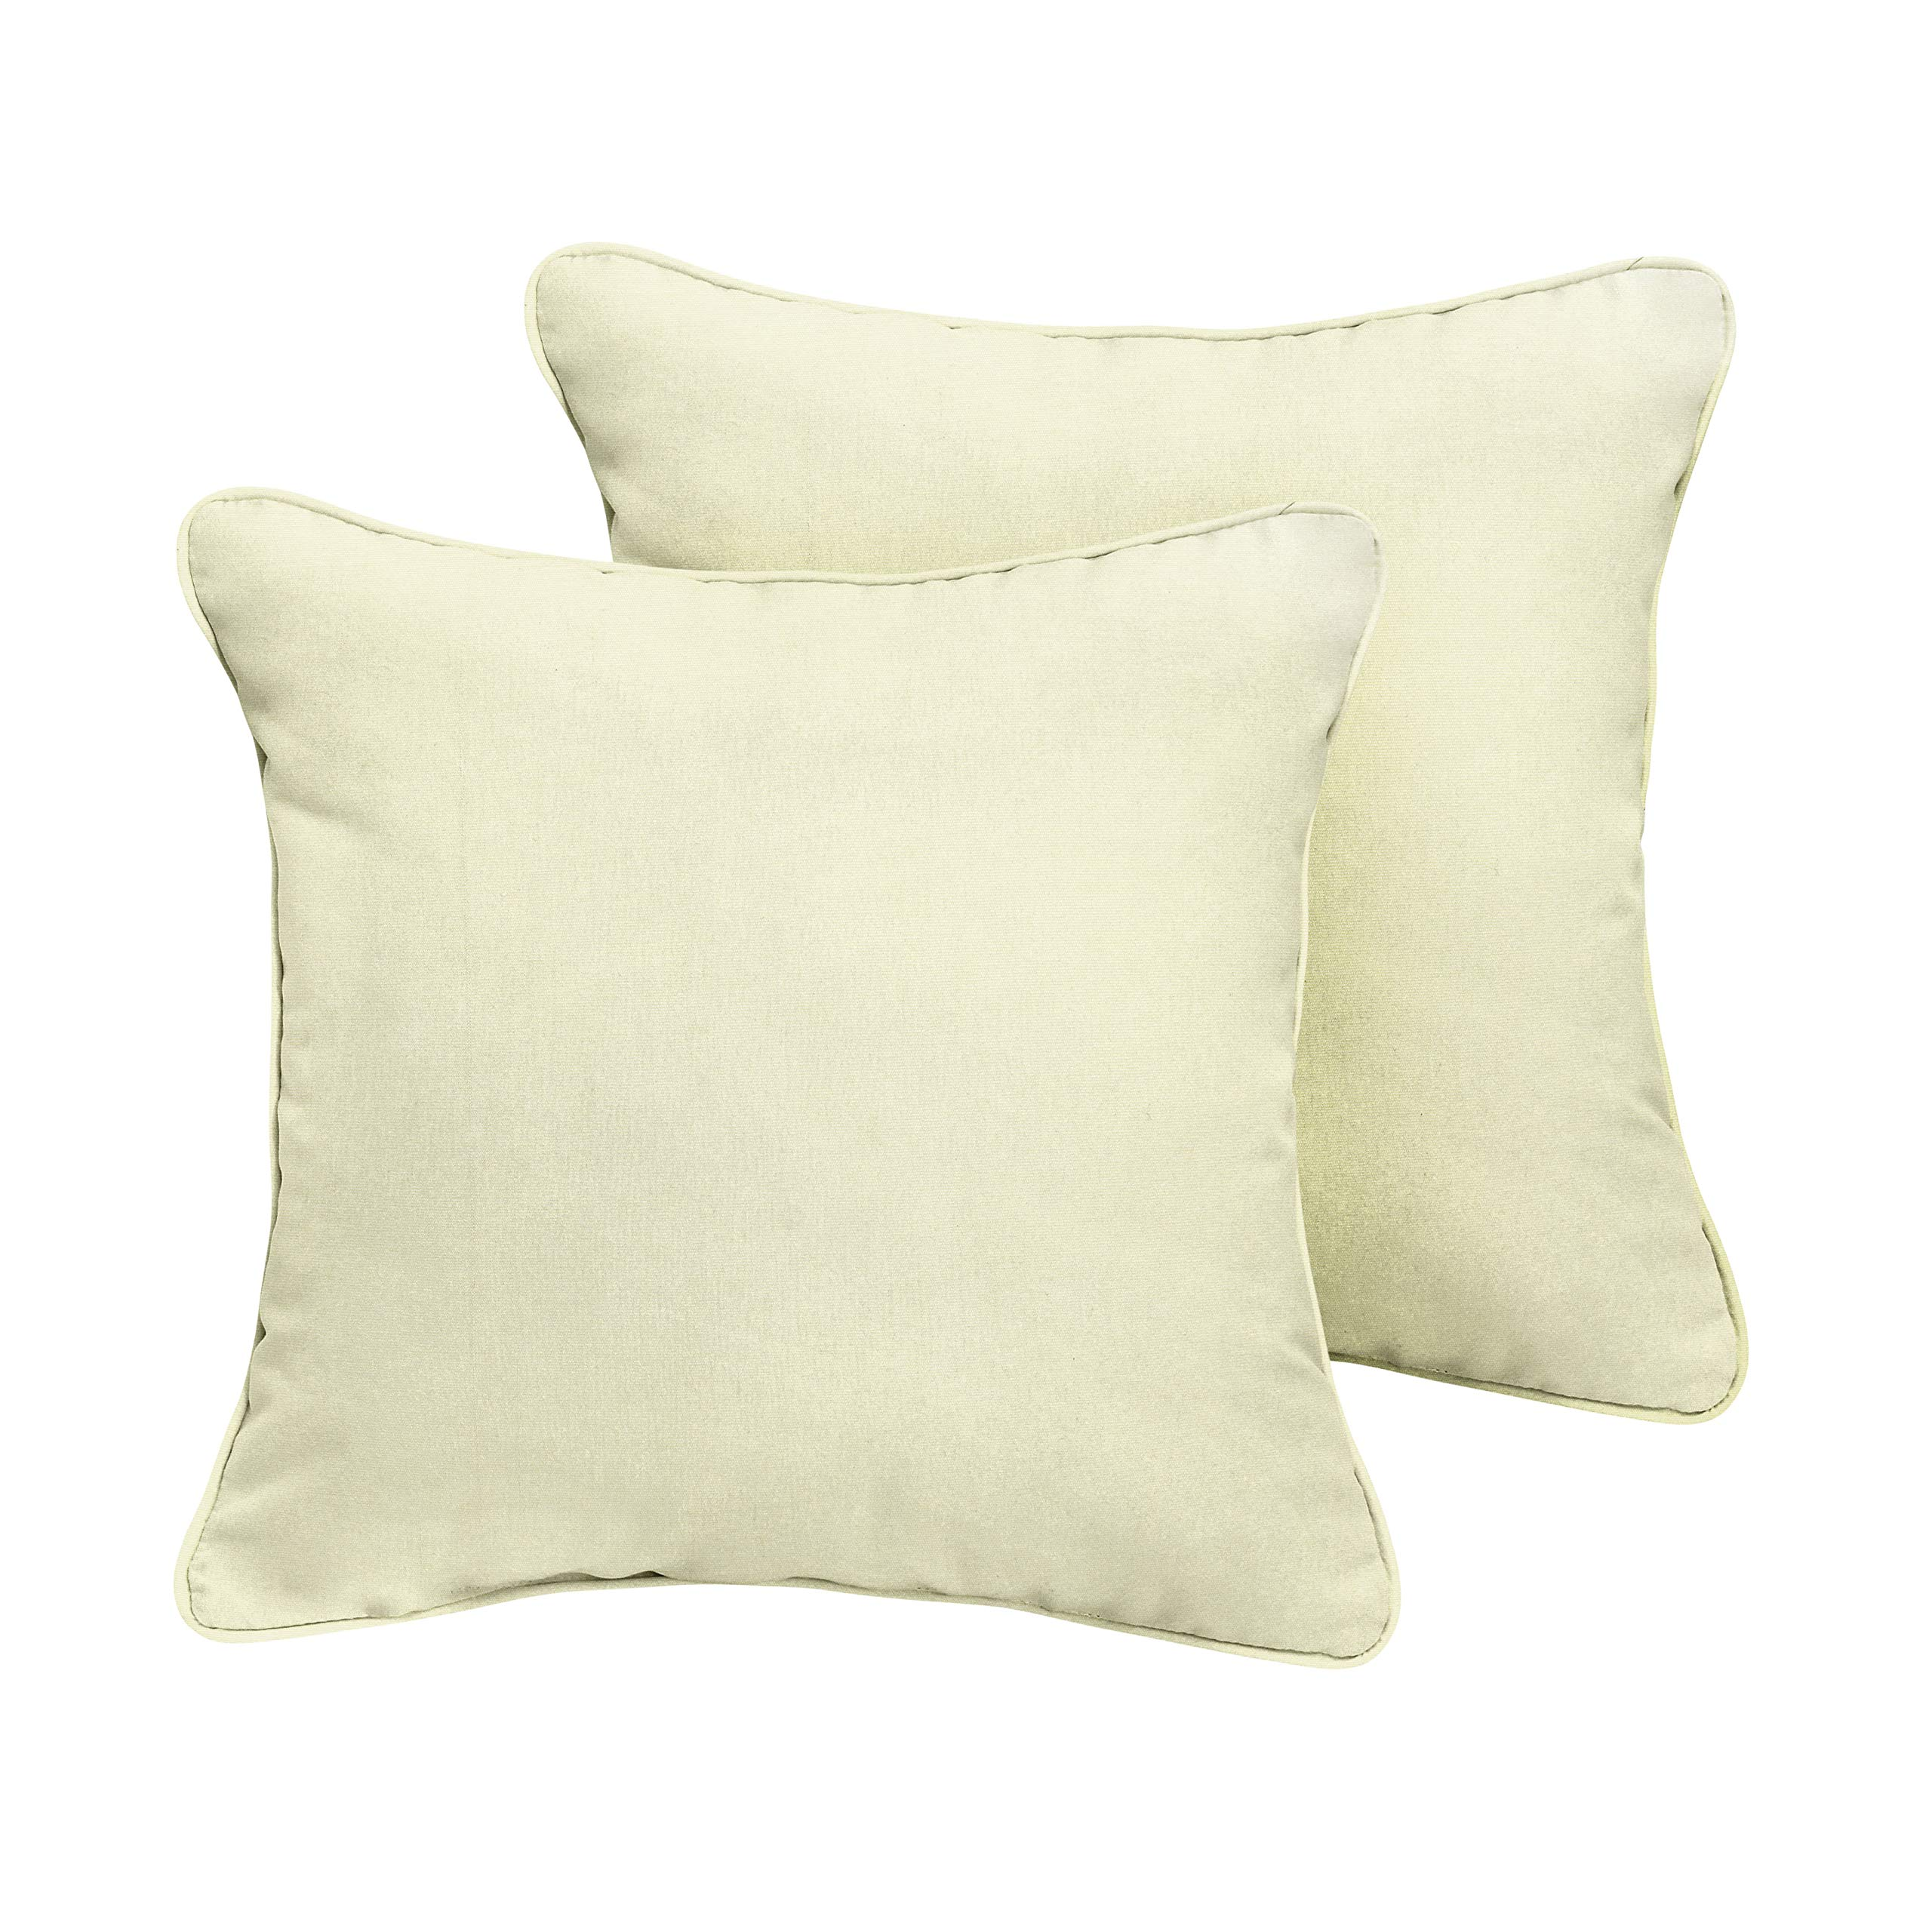 1101Design Sunbrella Canvas Natural Corded Decorative Indoor/Outdoor Square Throw Pillow, Perfect for Patio Decor - Canvas Ivory 24'' (Set of 2)